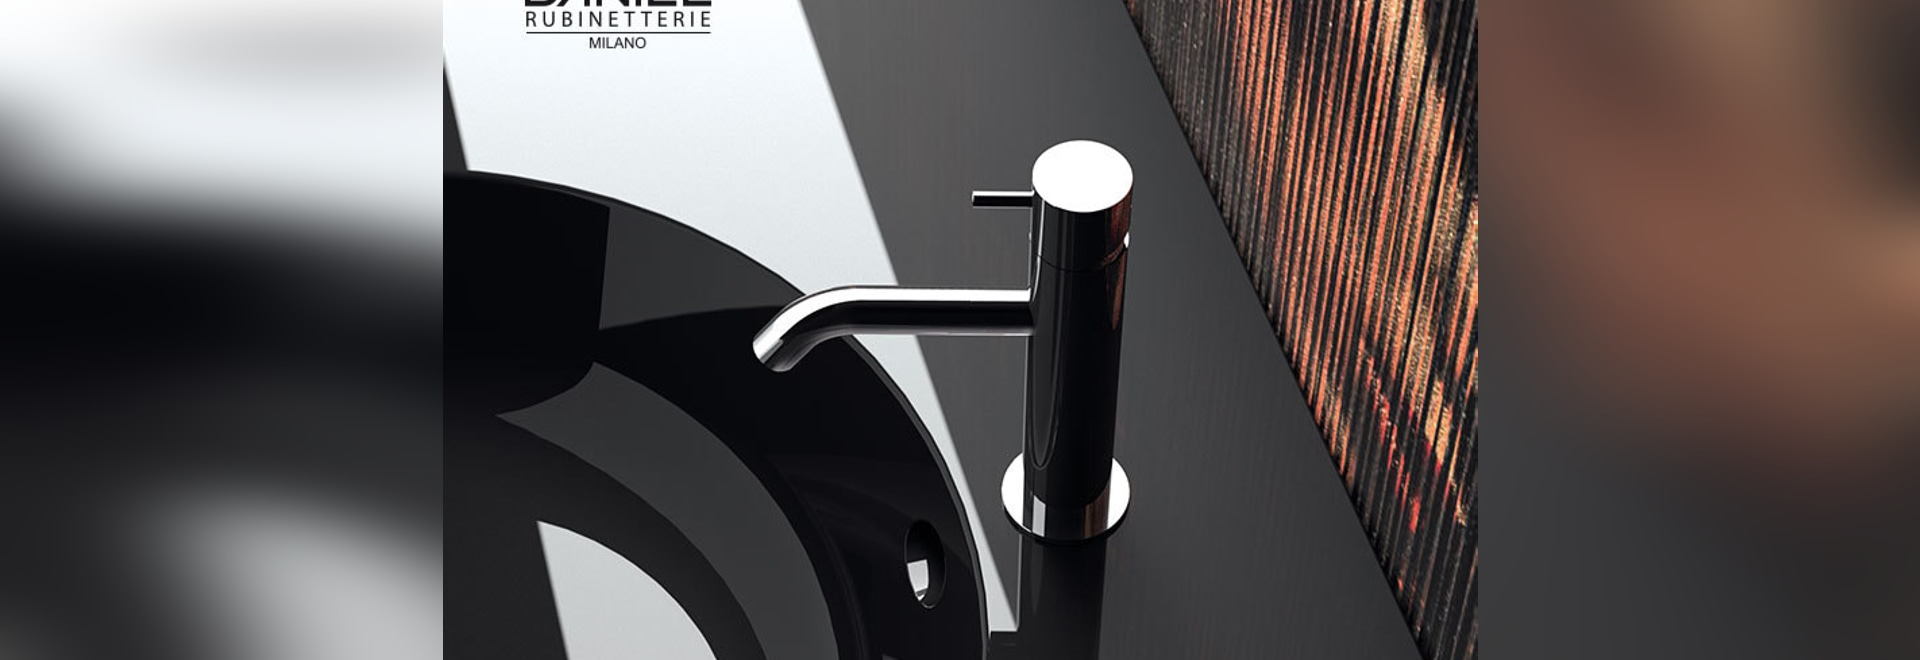 TOKYO FAUCETS COLLECTION by Daniel Rubinetterie